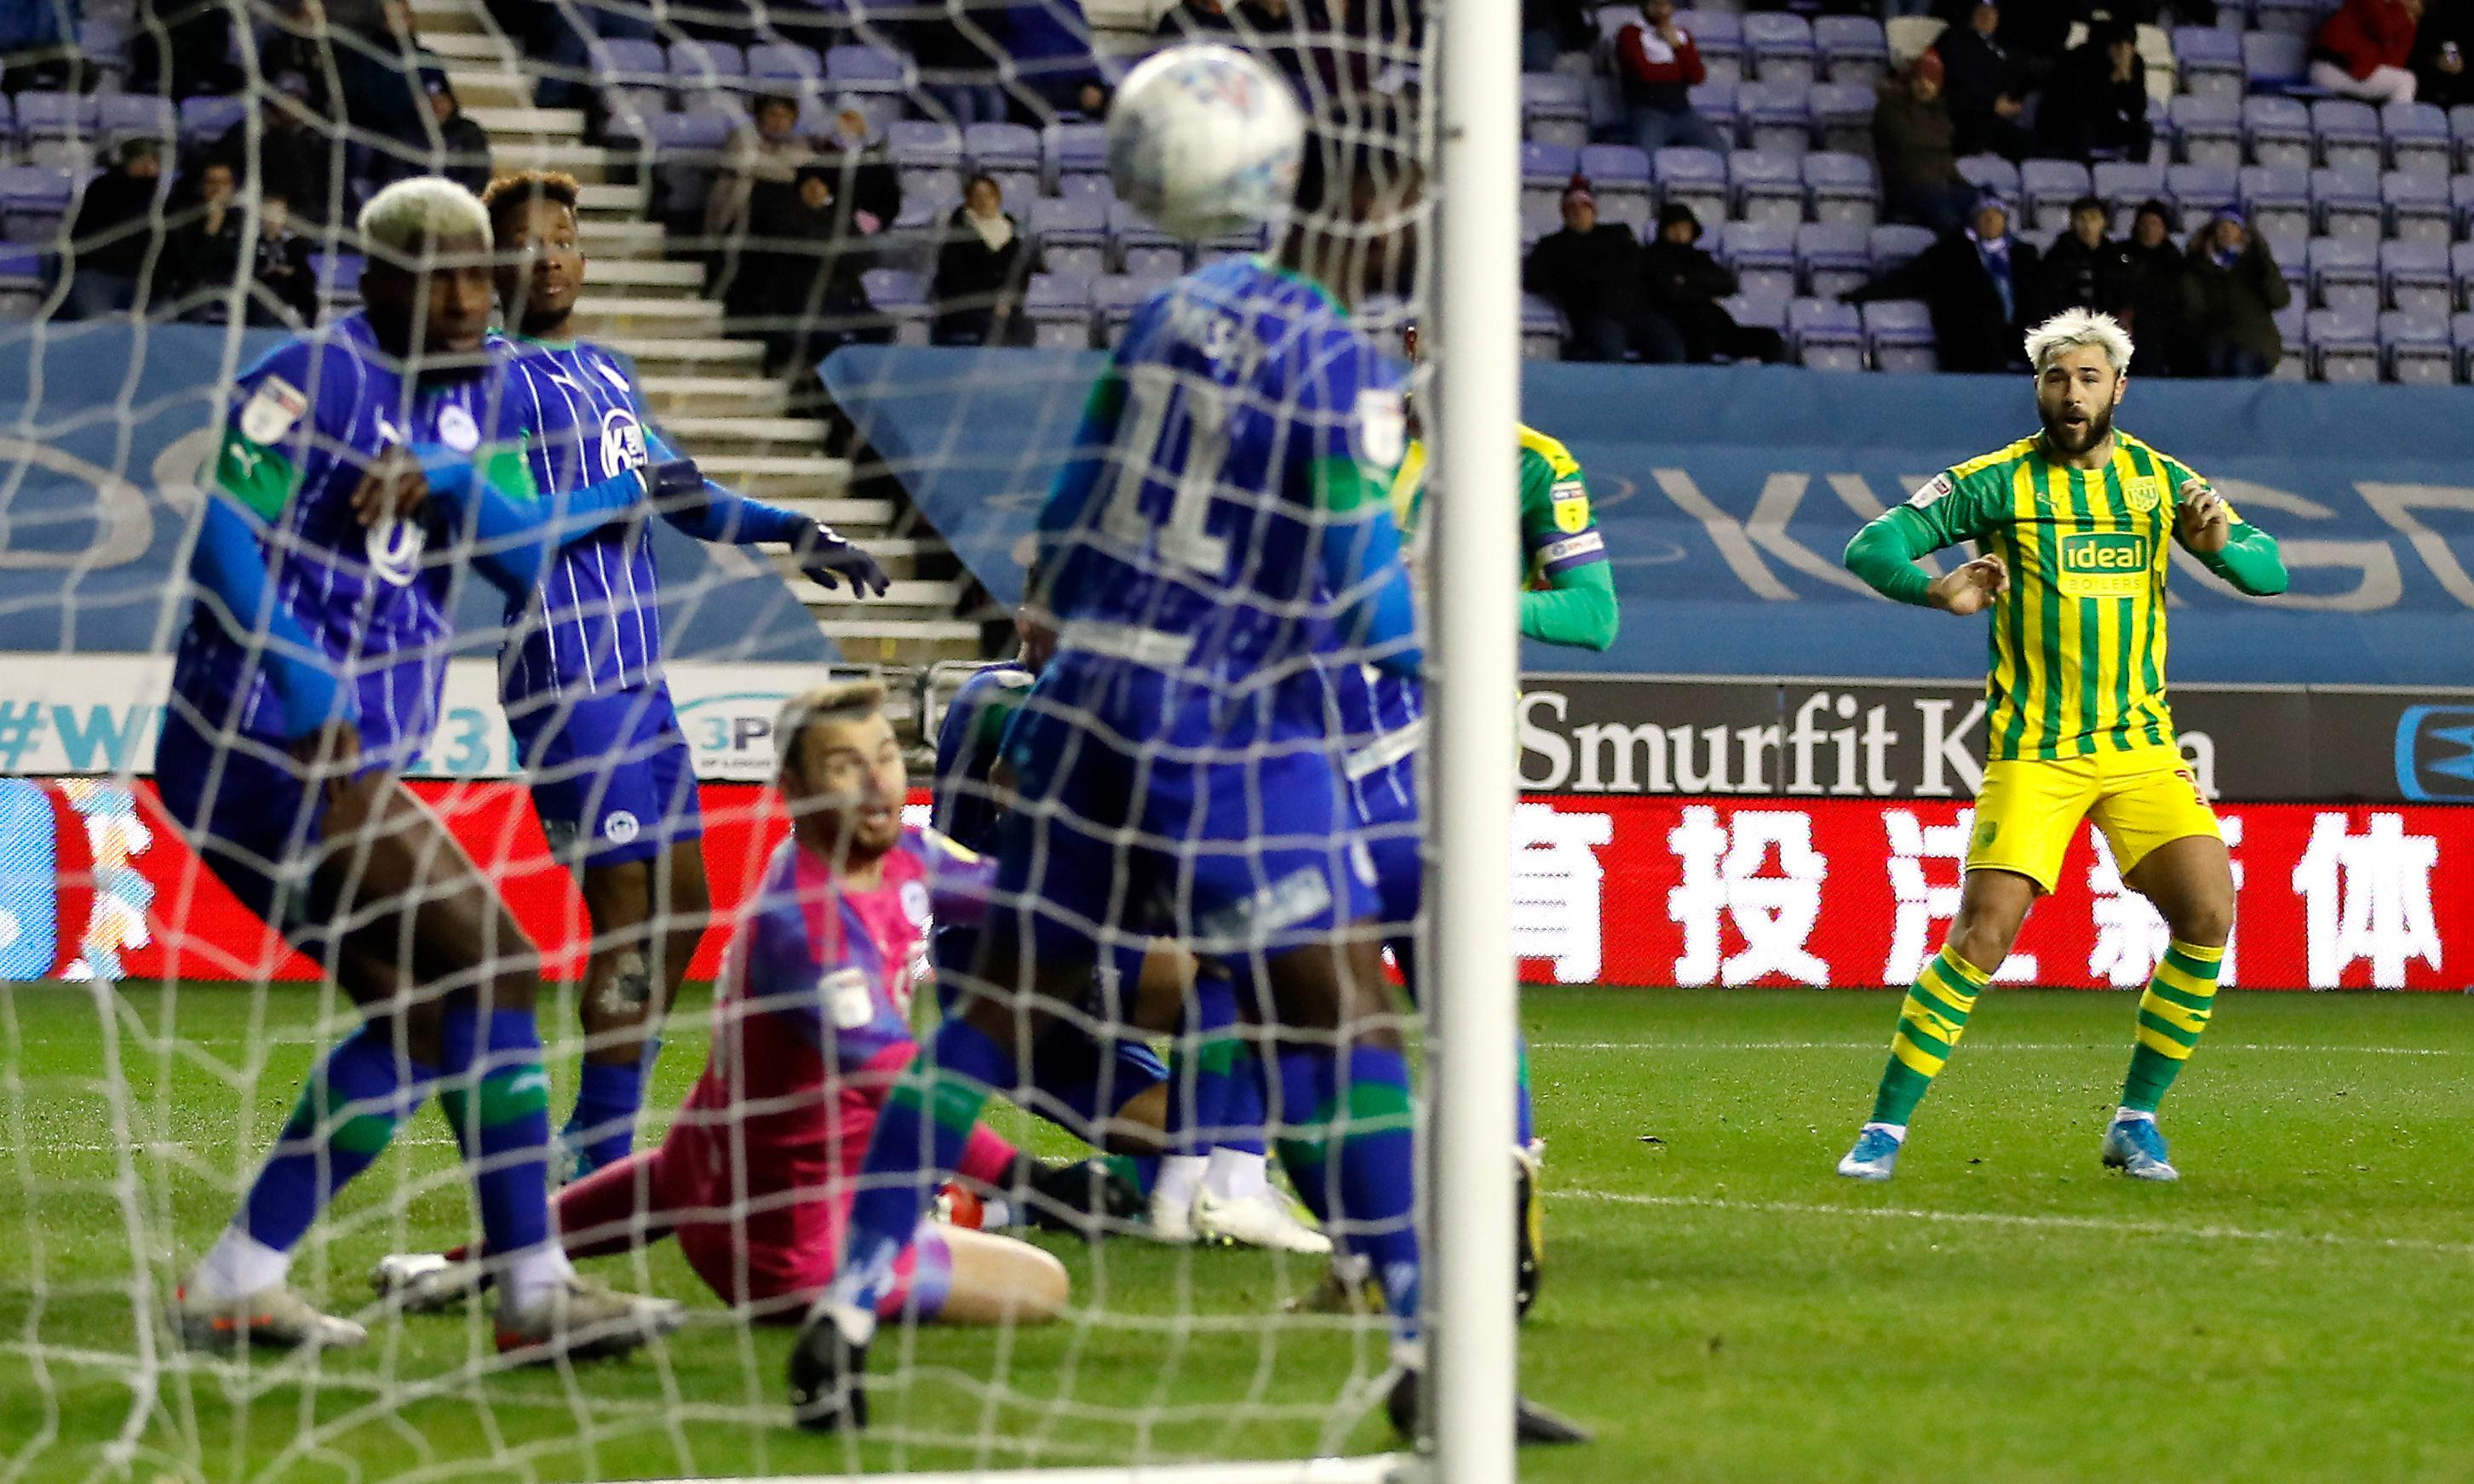 Championship: Wigan hold West Brom, Swansea's Cooper rages at referee